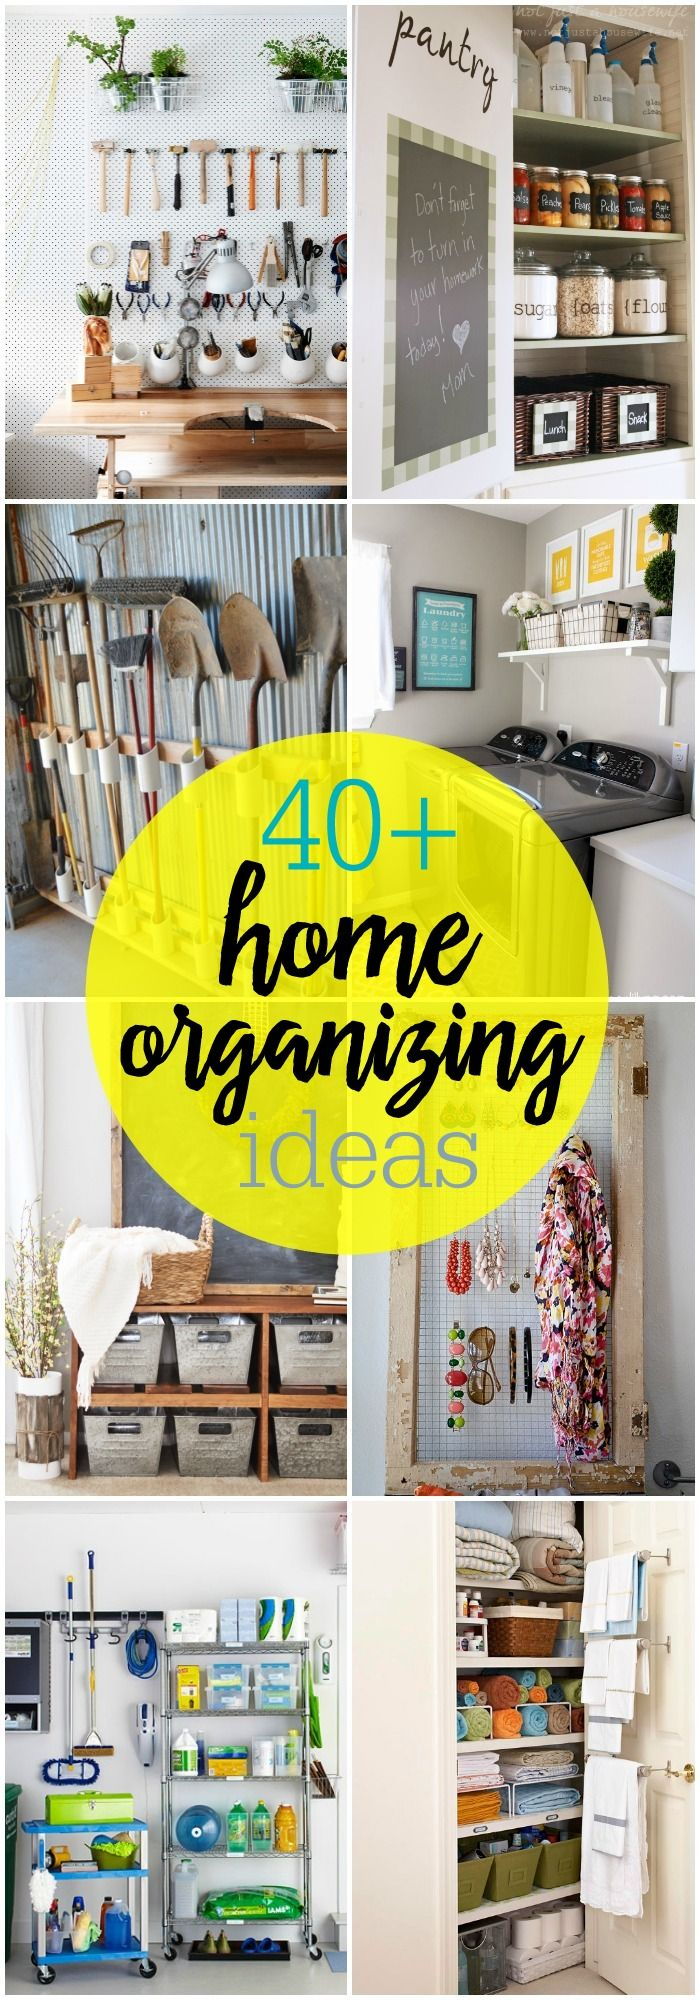 40+ Home Organizing Ideas. A great collection of ideas as you prepare to organize the rooms in your home!